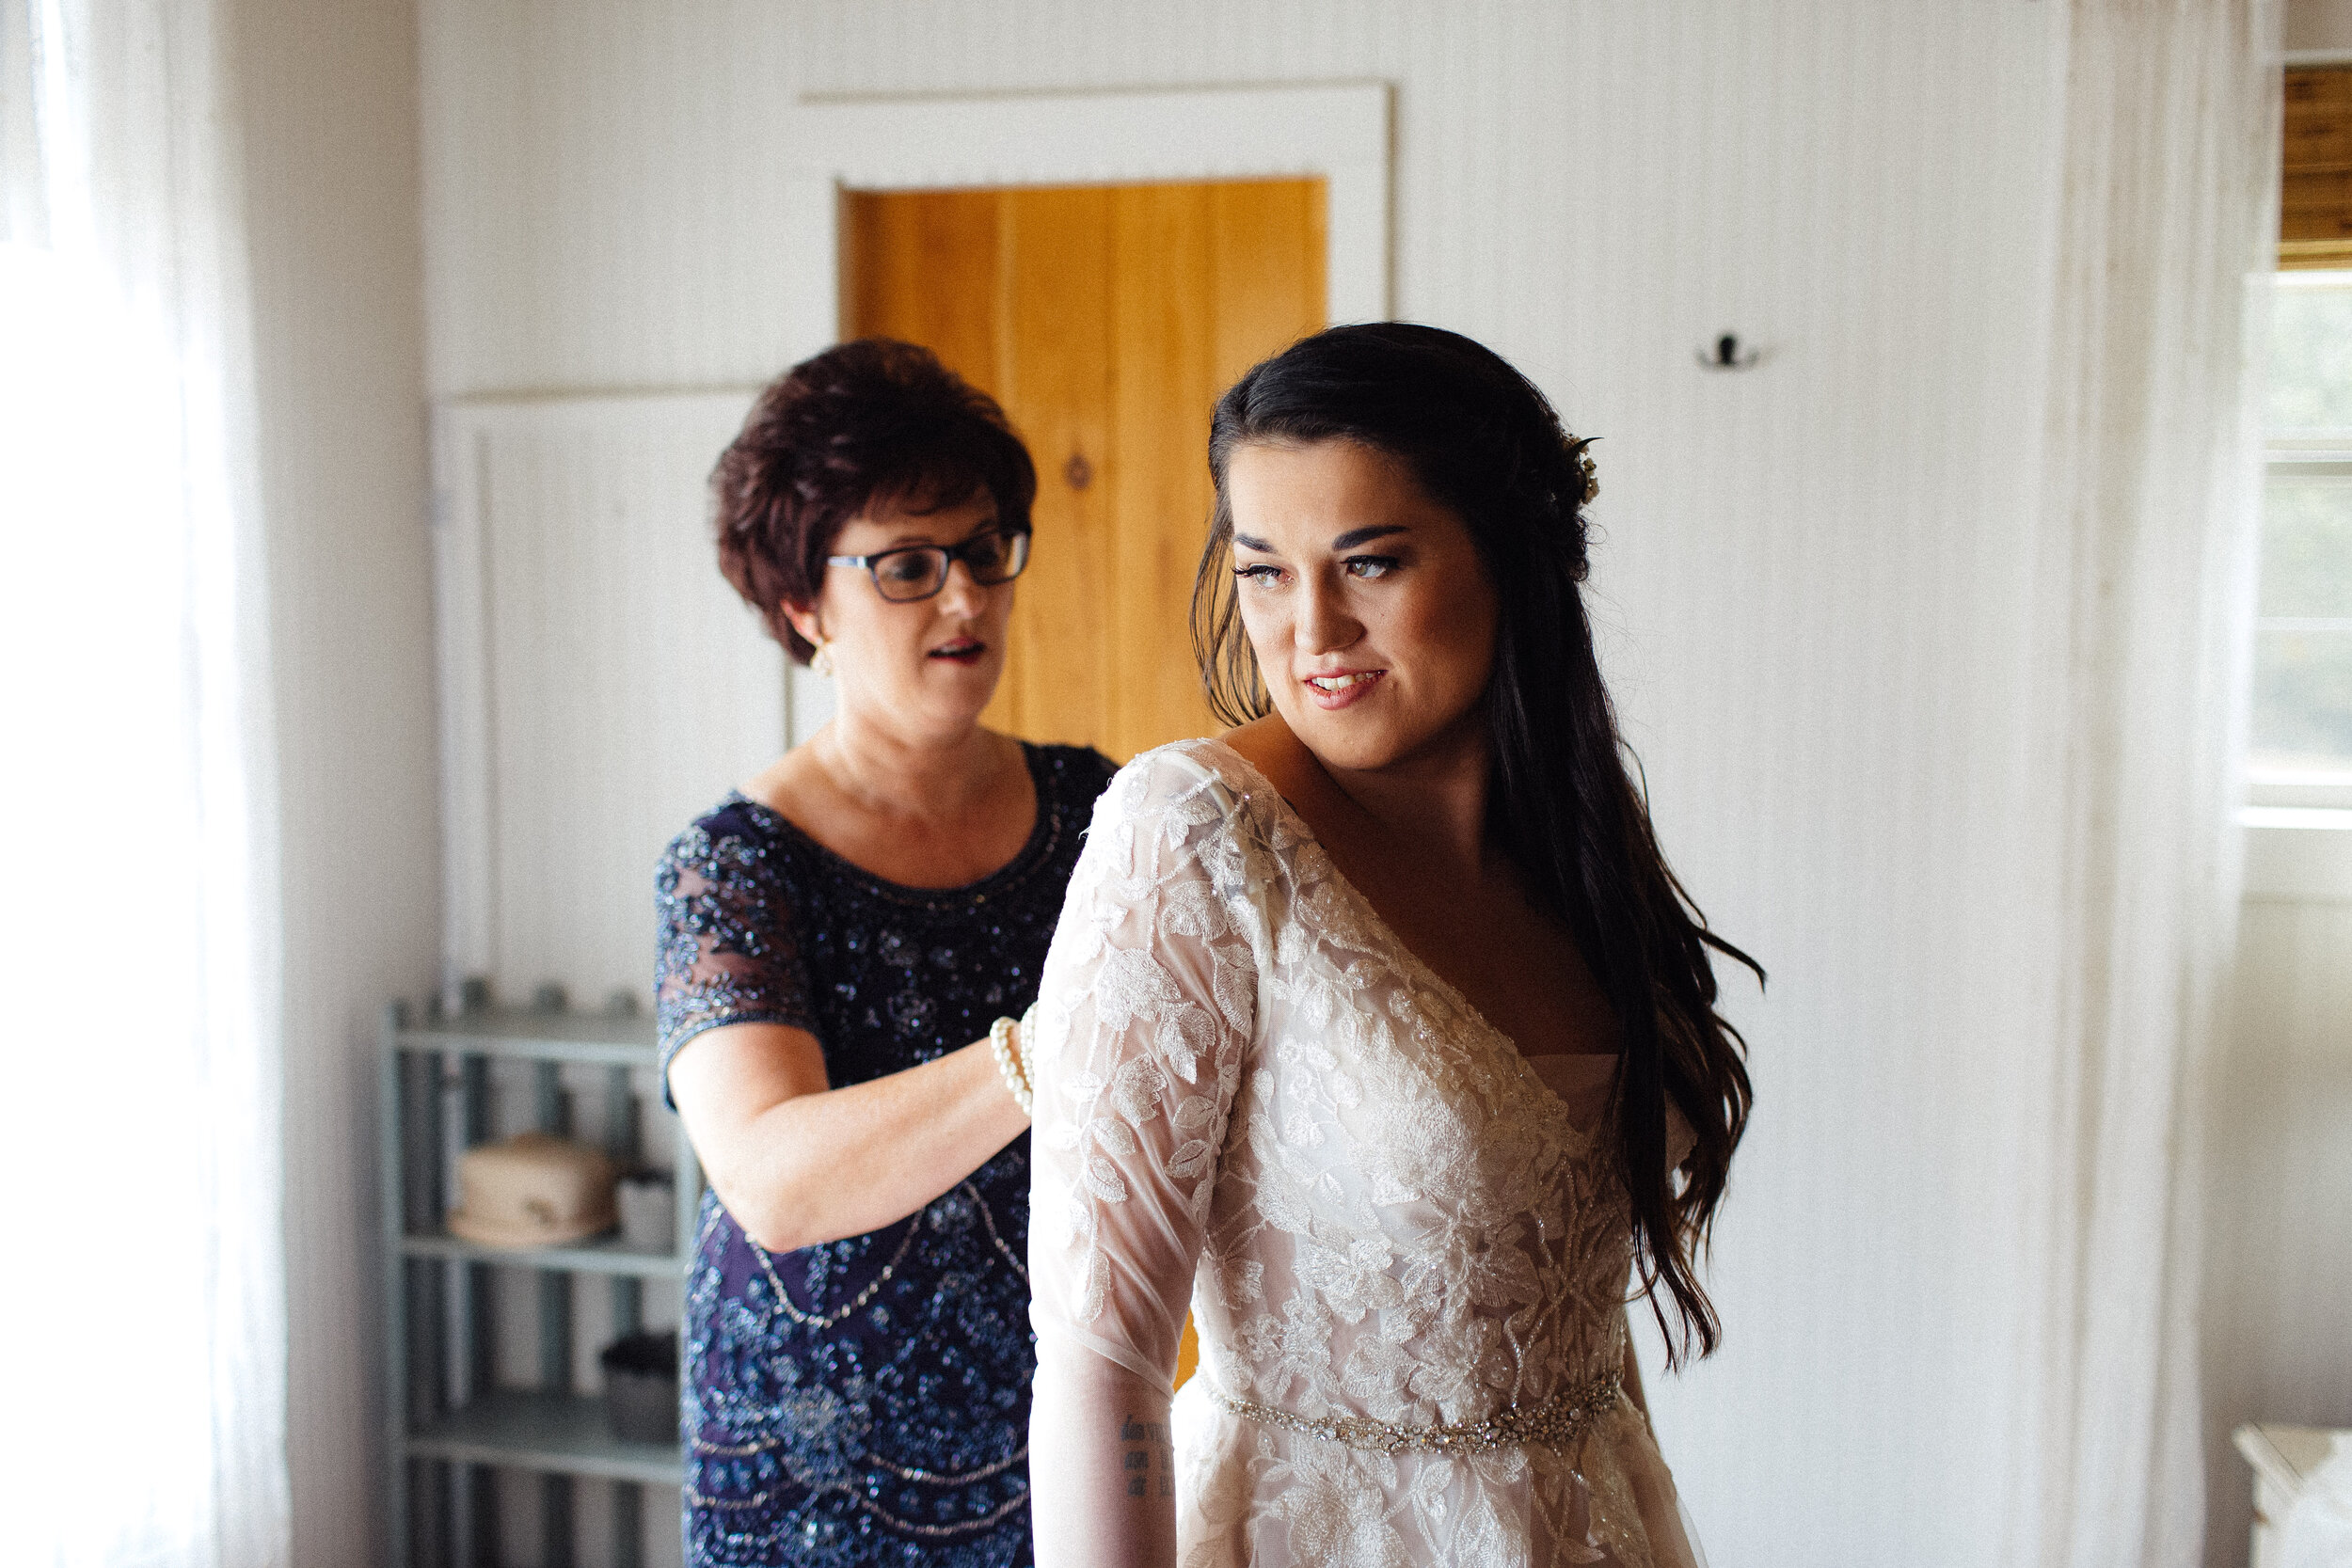 atlanta_wedding_photographers_georgia_same_sex_rustic_barn_farm_lesbian_weddings_inclusive_1103.jpg